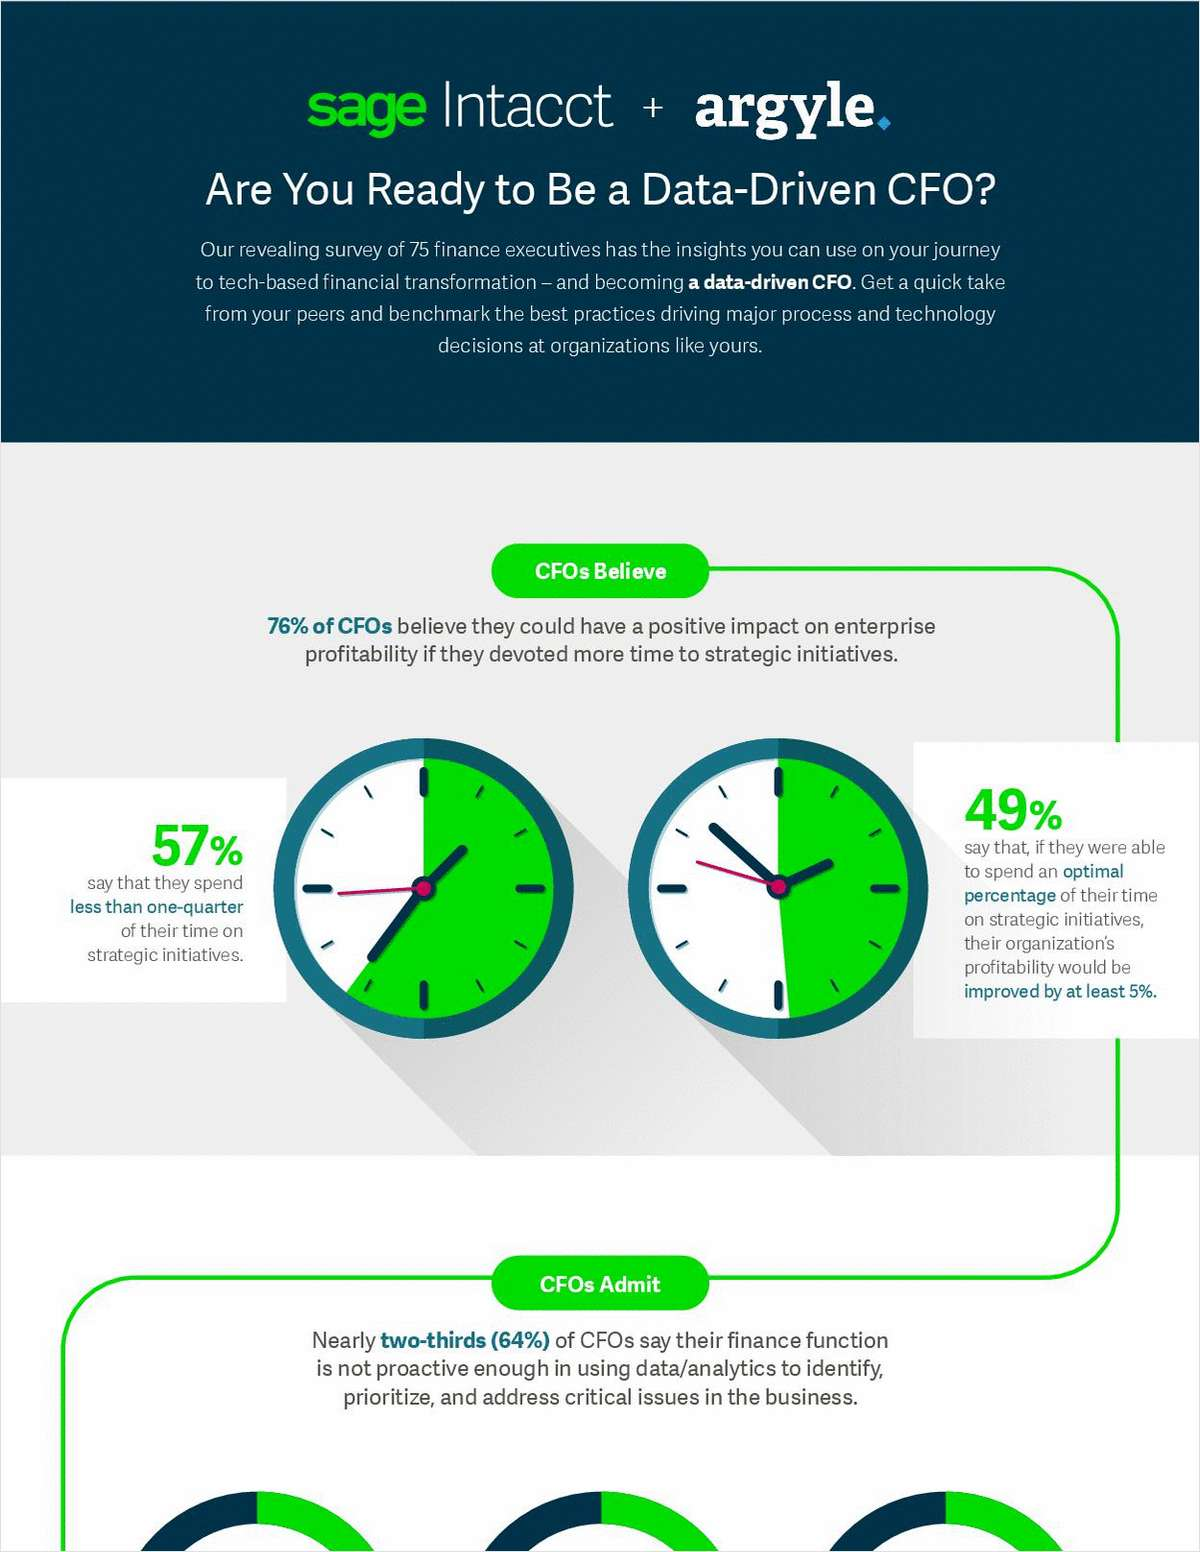 Are You Ready to be a Data-Driven CFO?